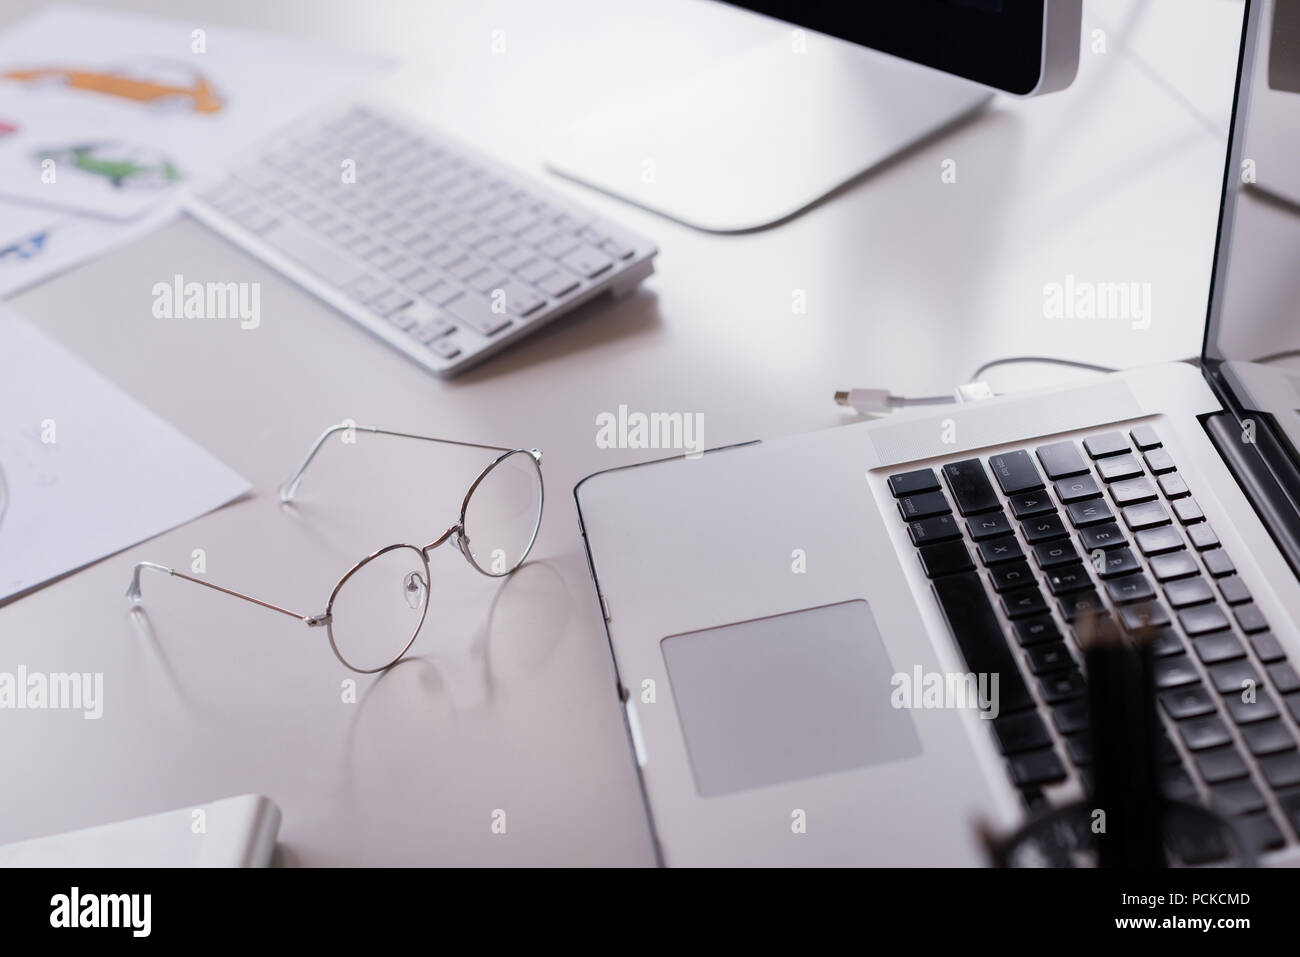 Laptop, computer keyword, spectacles and documents on office table - Stock Image